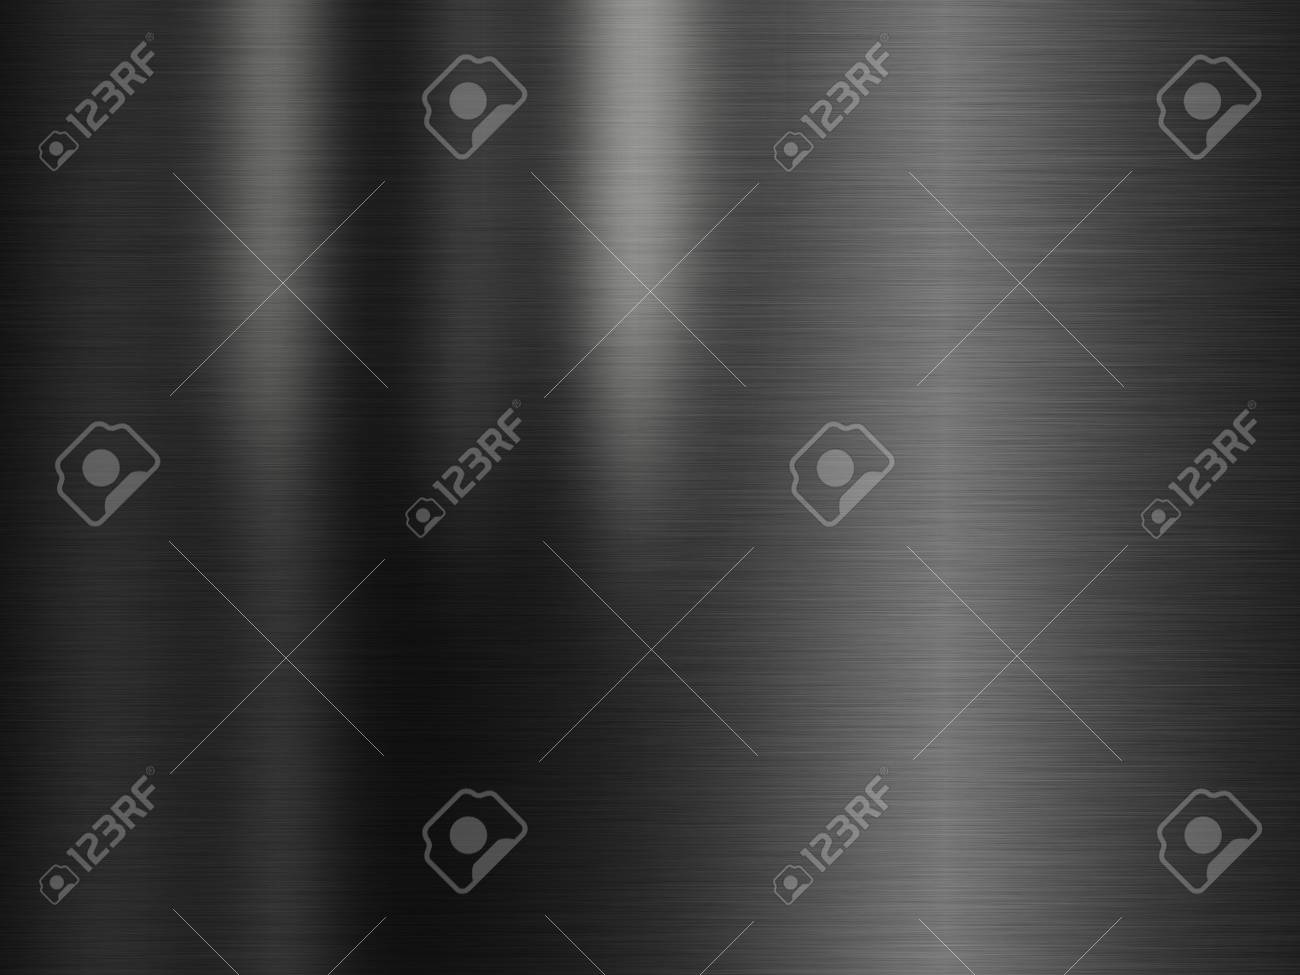 Stainless steel texture or metal texture background Banque d'images - 75076720